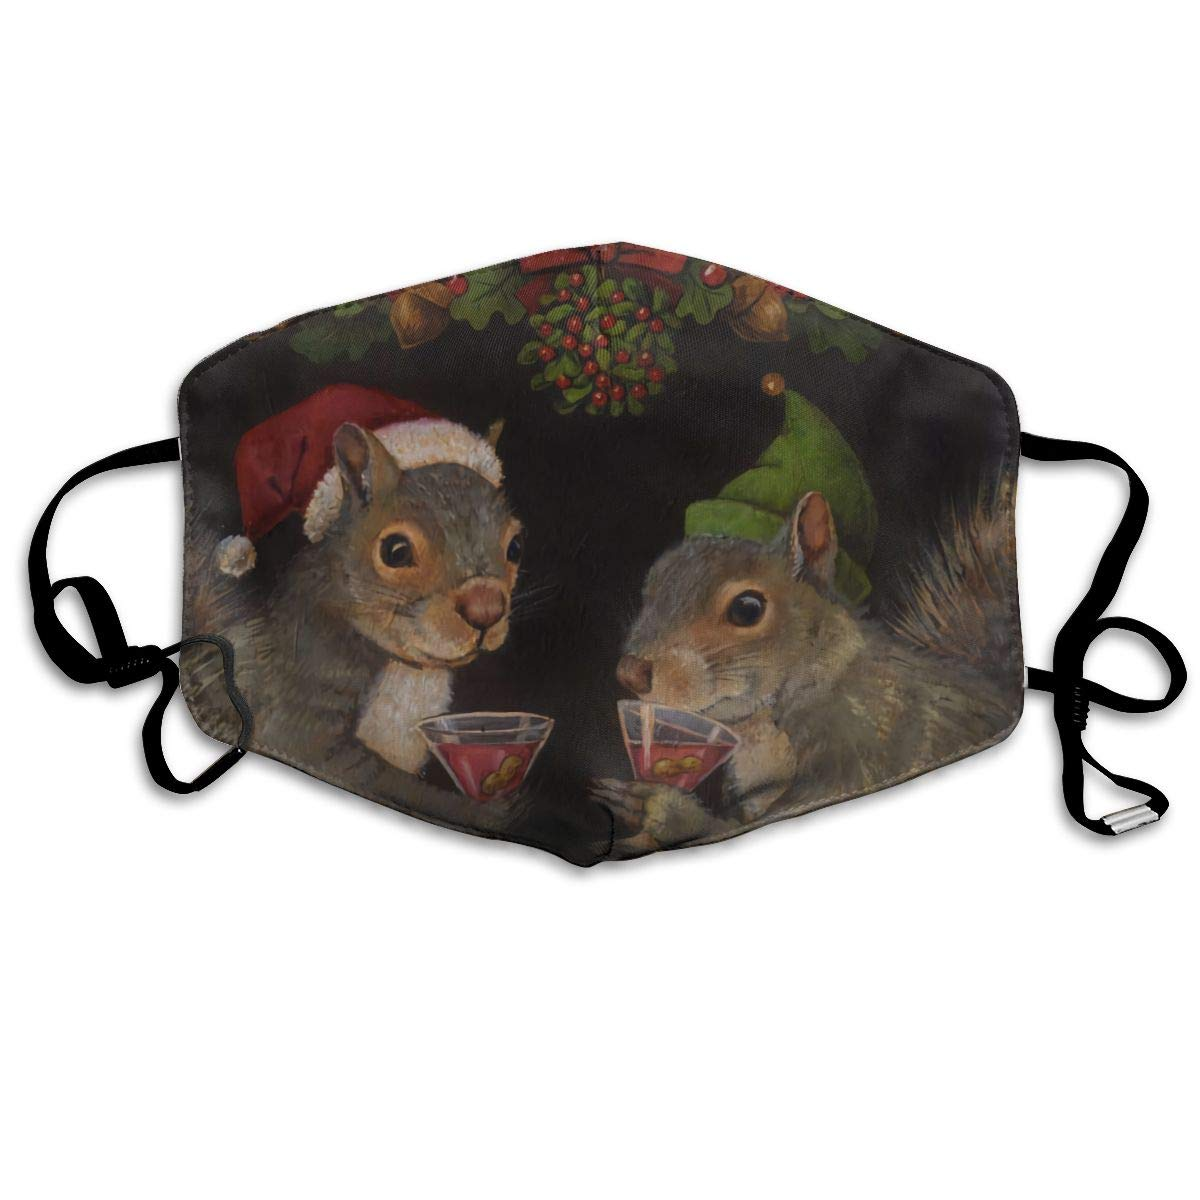 NiYoung Ideal Gift - Women Men Boys Girls Dustproof Christmas Cocktail Squirrels Half Face Mouth Mask Breathable Mouth Muffle